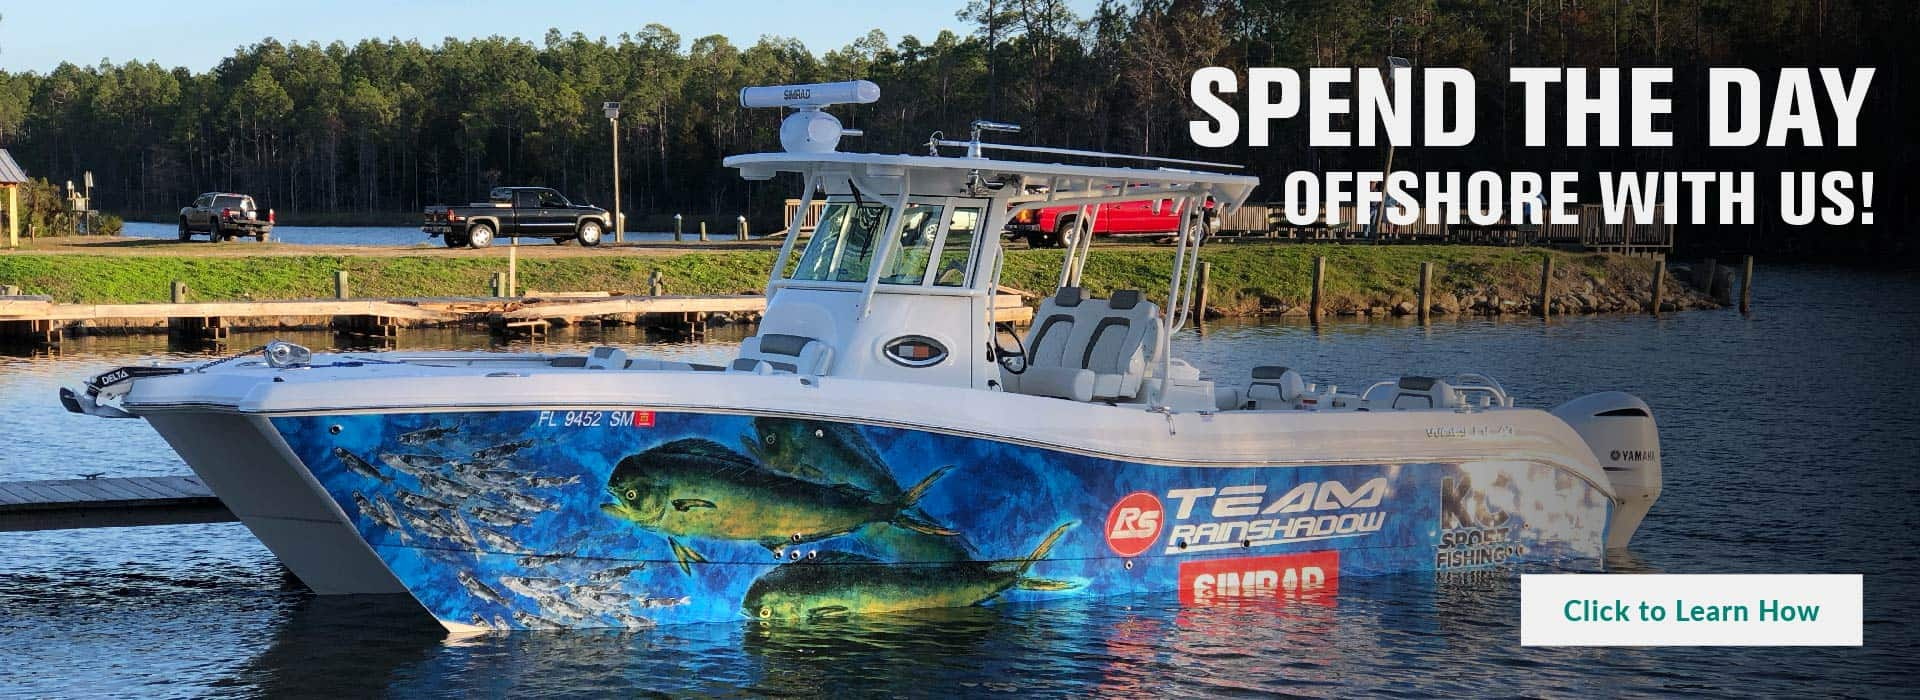 Kick off Spring with a Day on the Water!